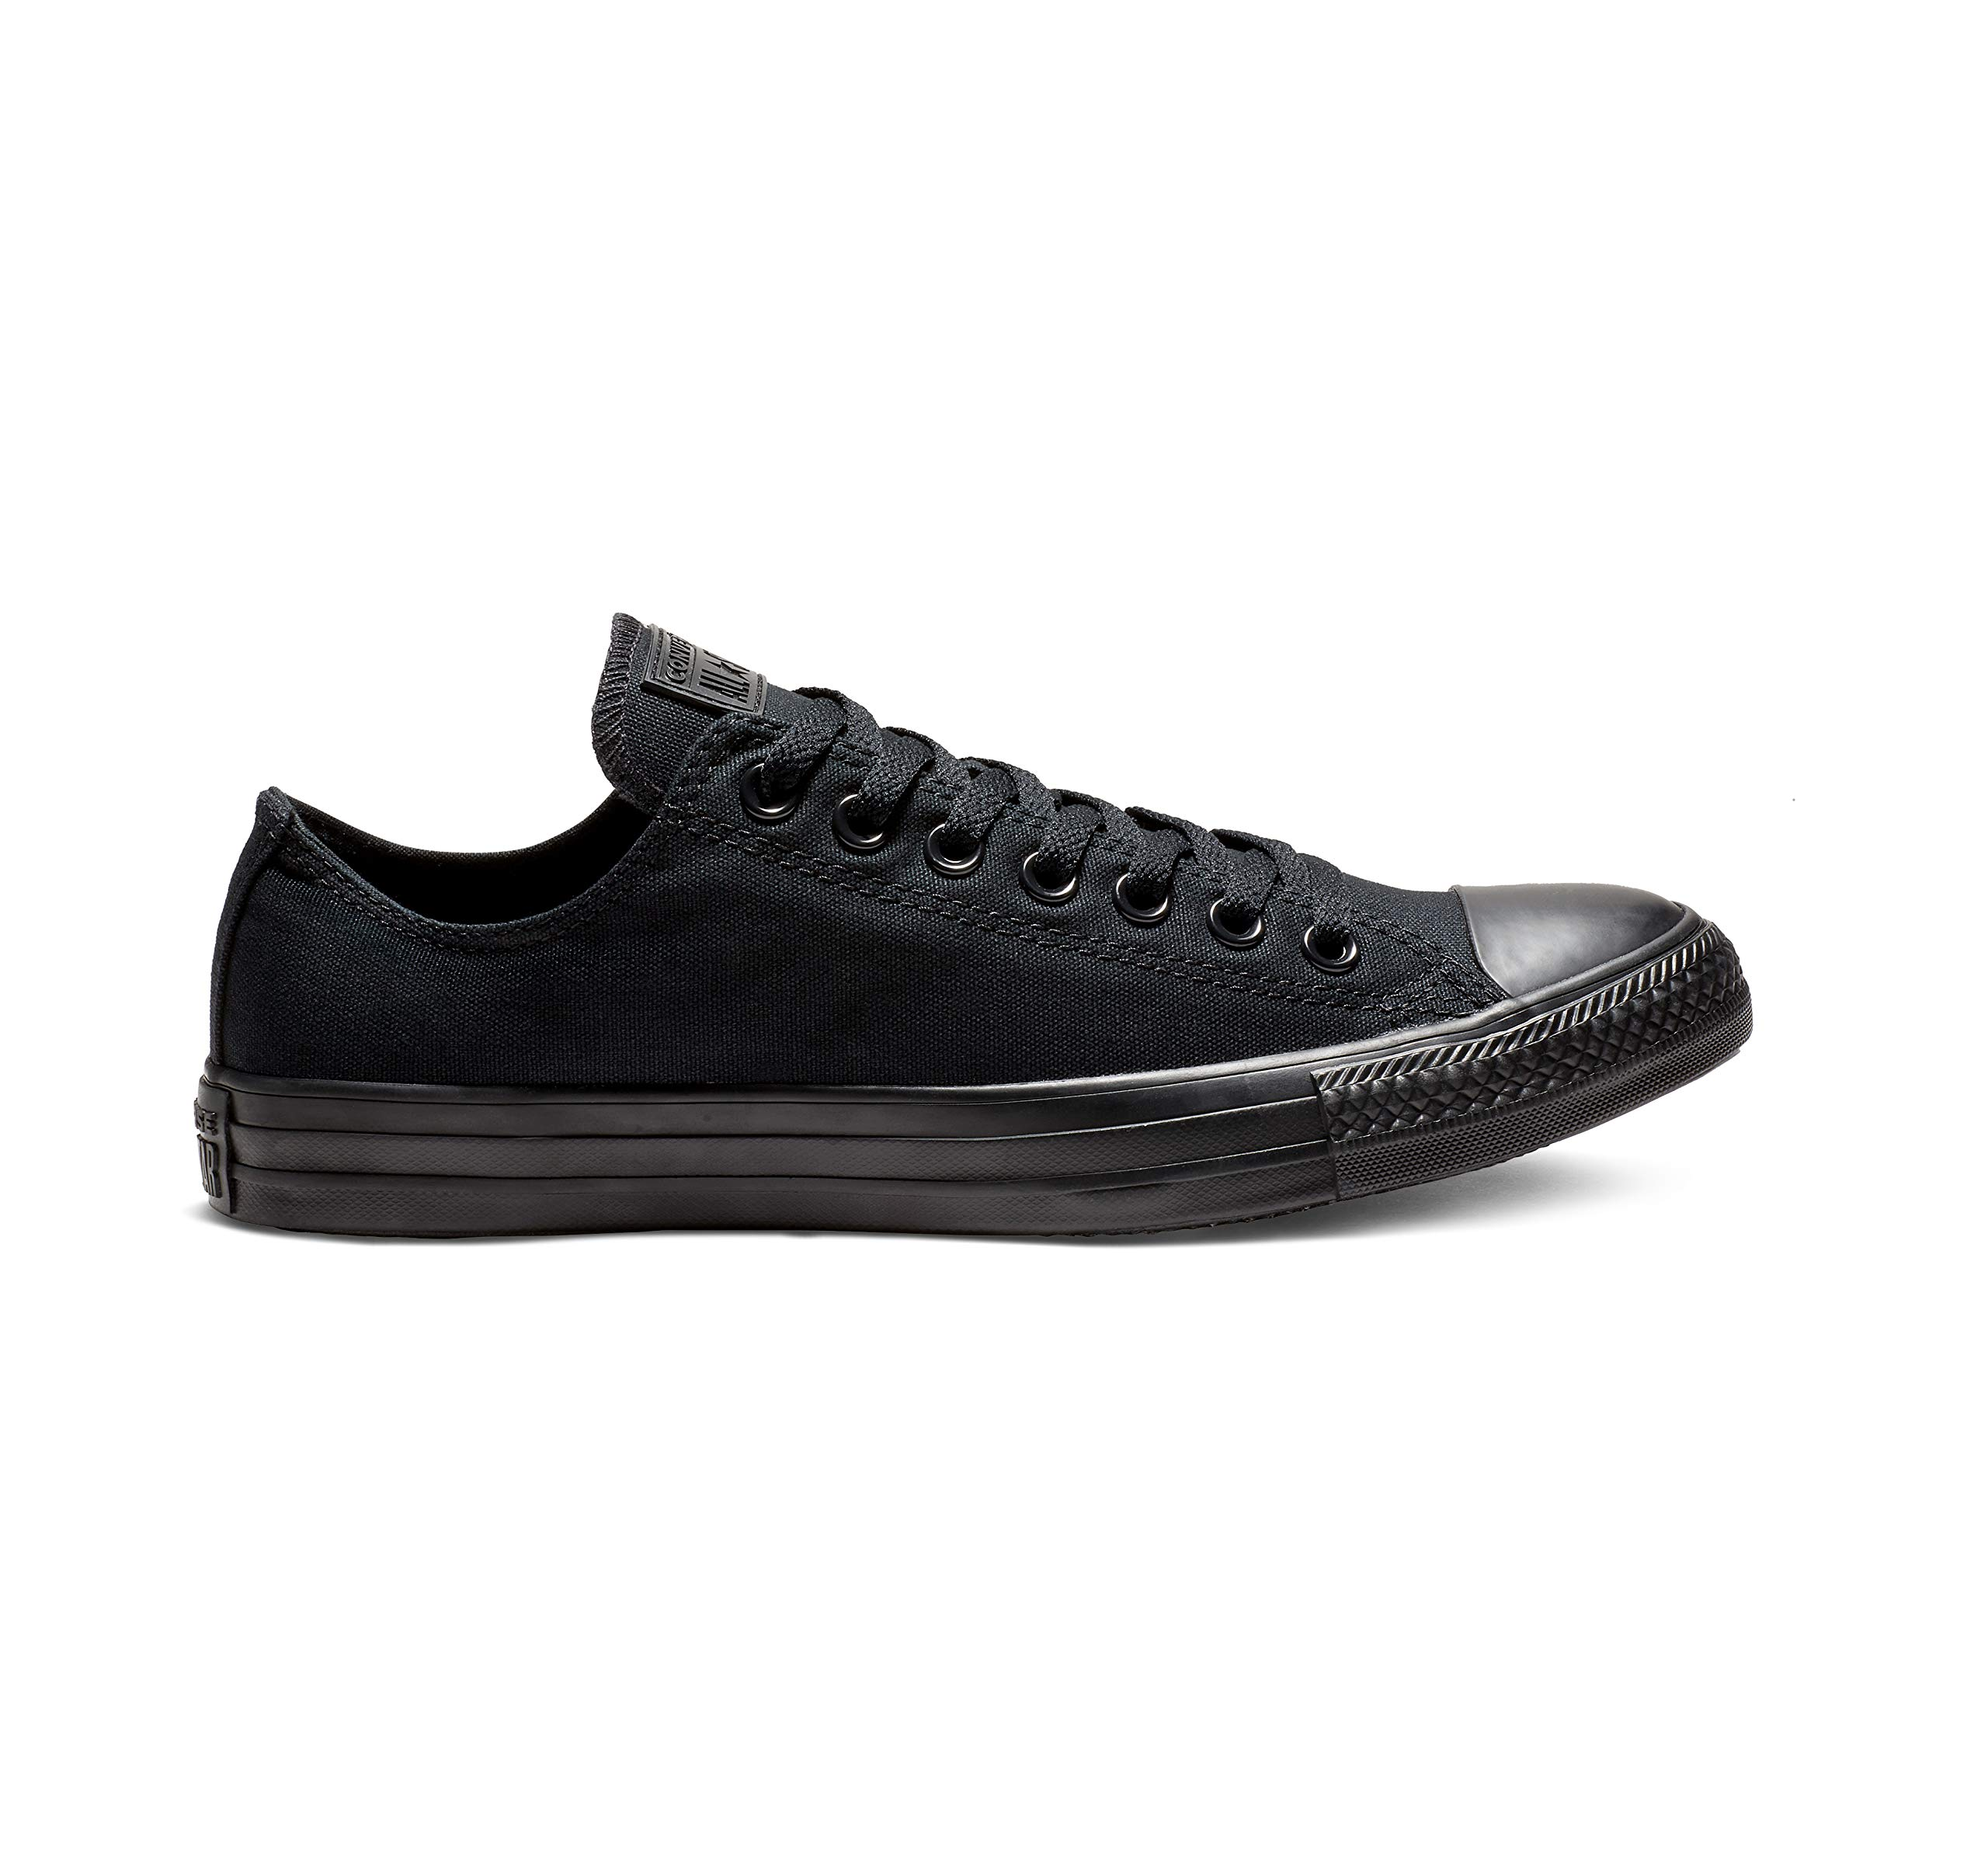 Converse Unisex Chuck Taylor All Star Low Top Black Monochrome Sneakers - 9 D(M) US by Converse (Image #13)